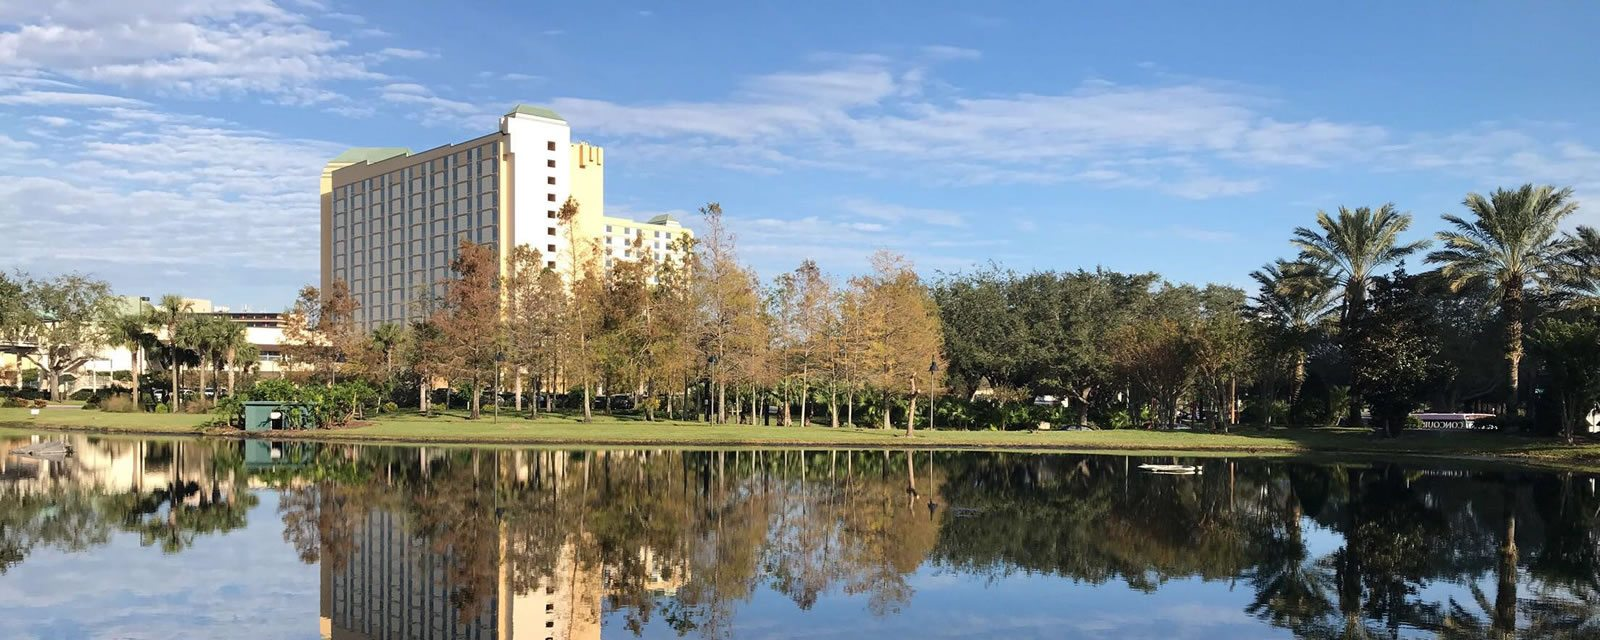 Shot of Rosen Plaza from the other side of lake with reflection in water